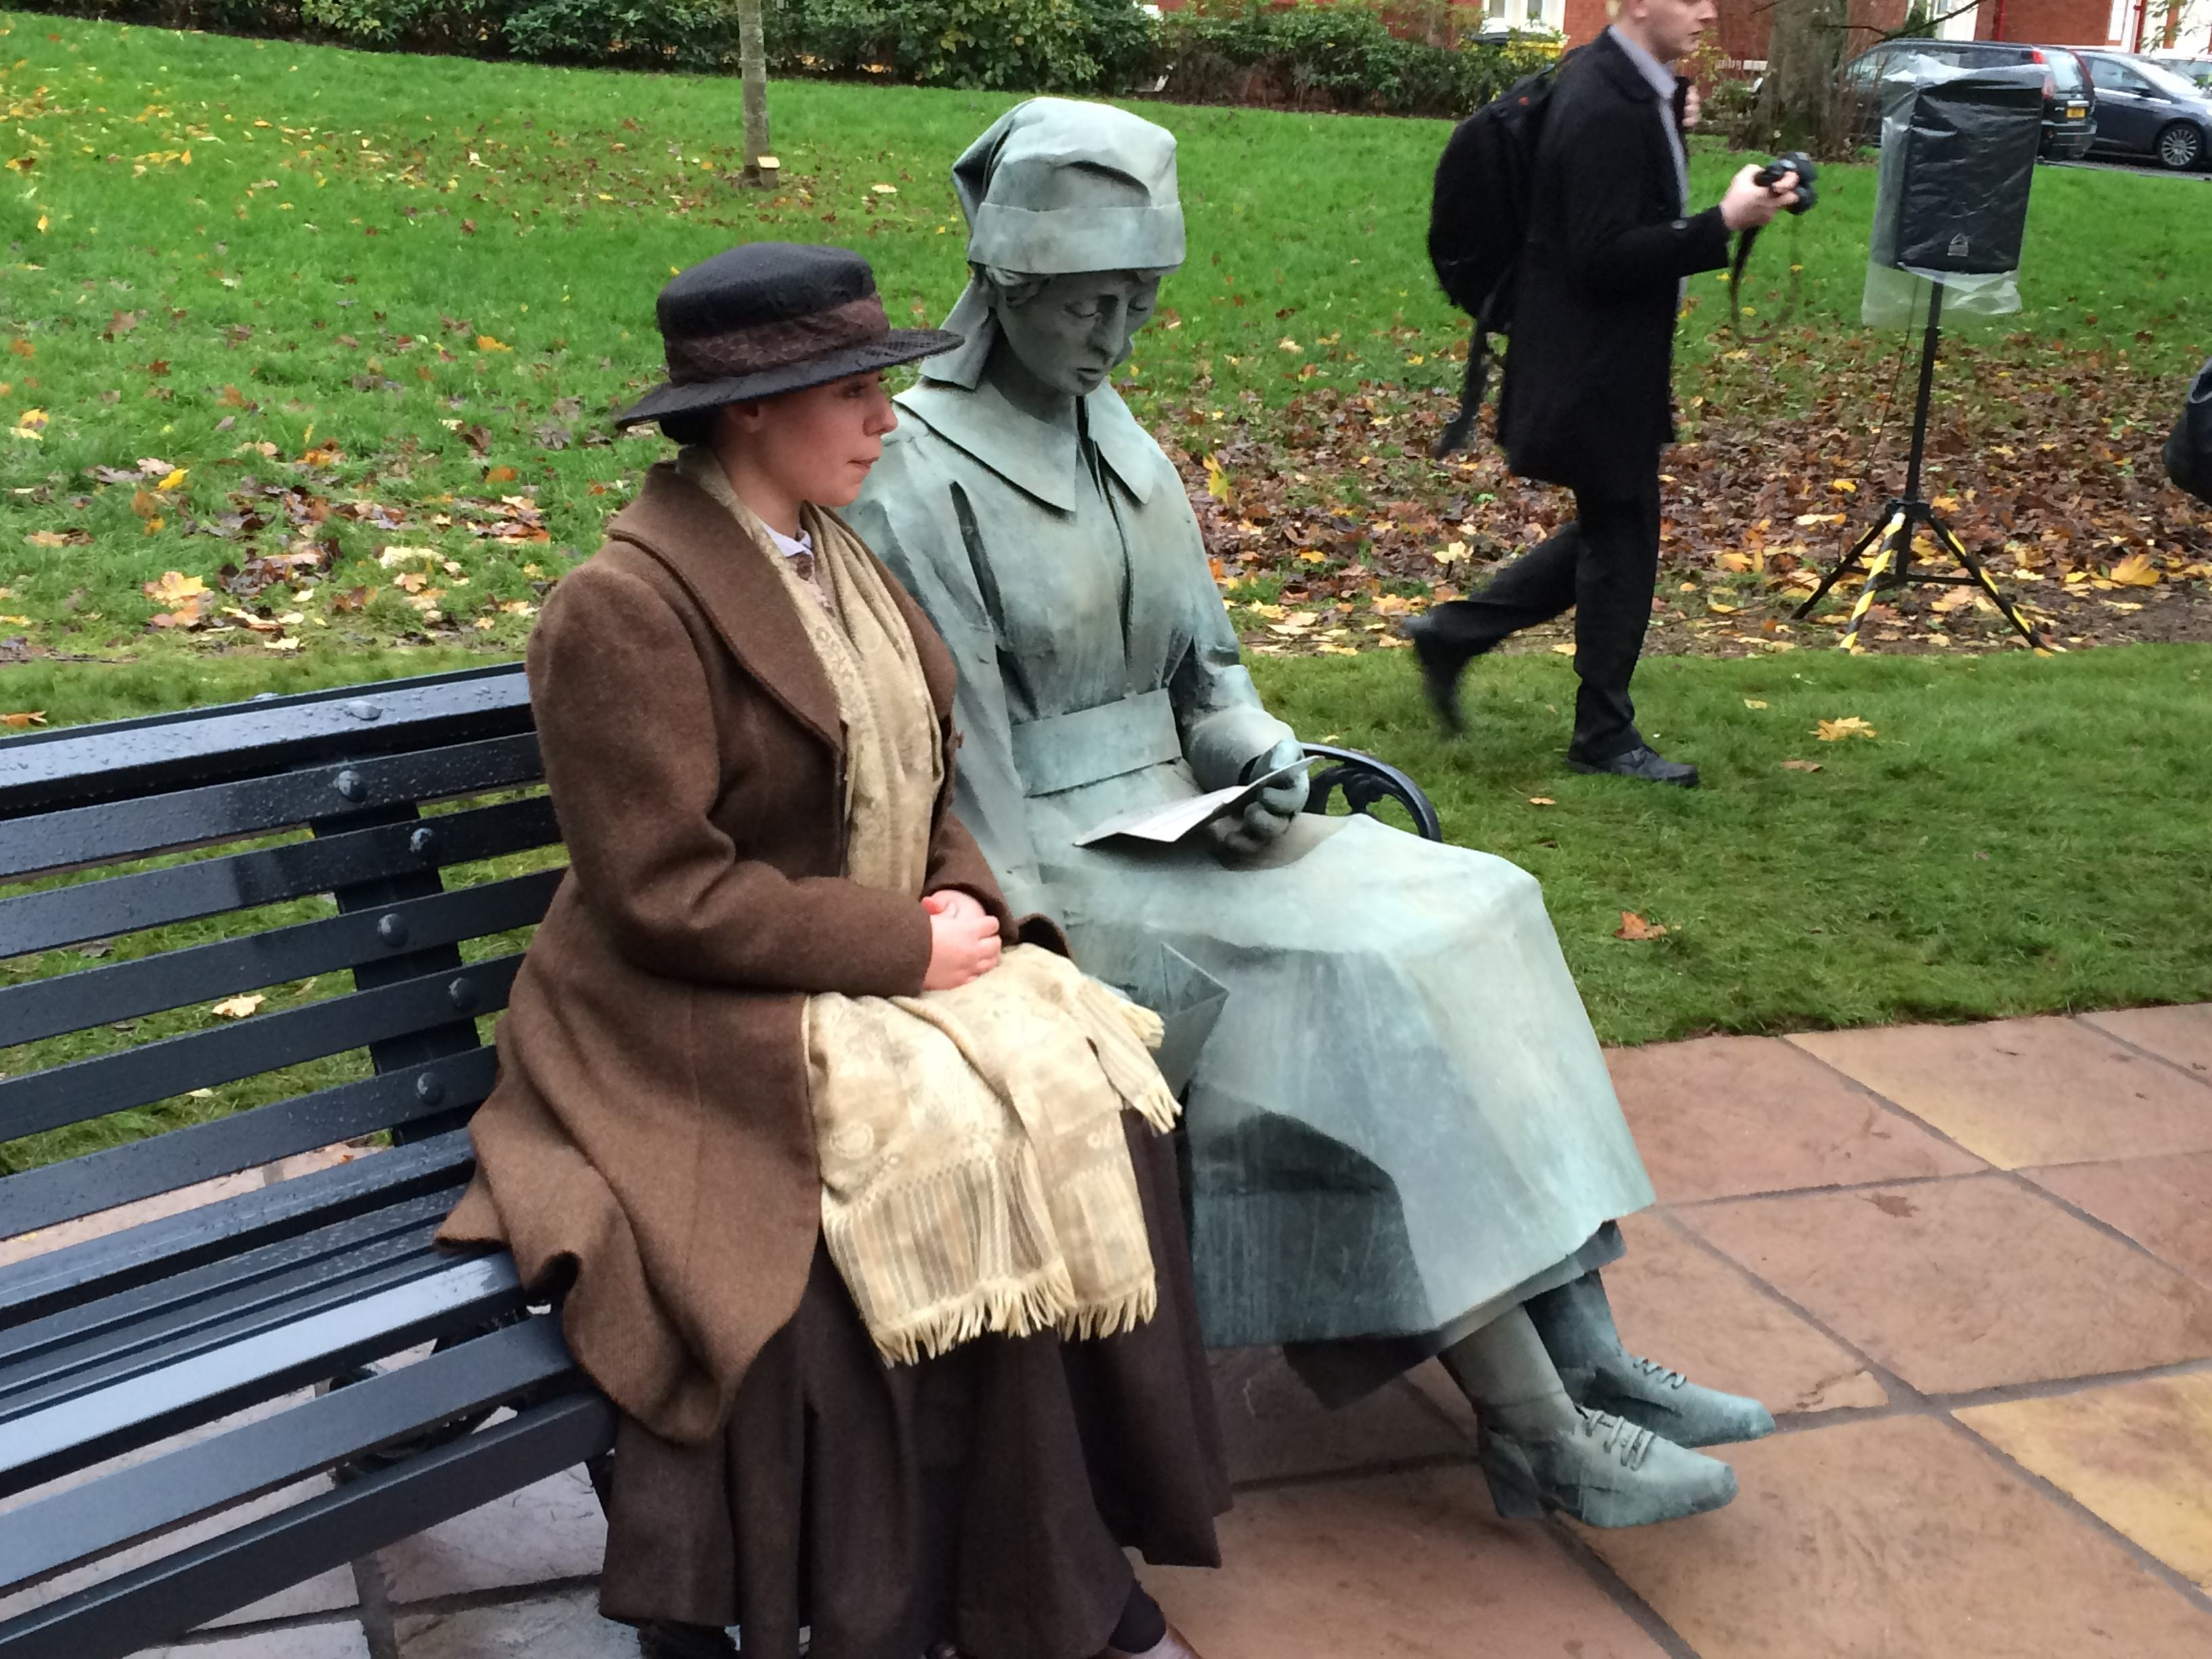 Statue of a woman on a bench, with actress in period cloths sitting next to it